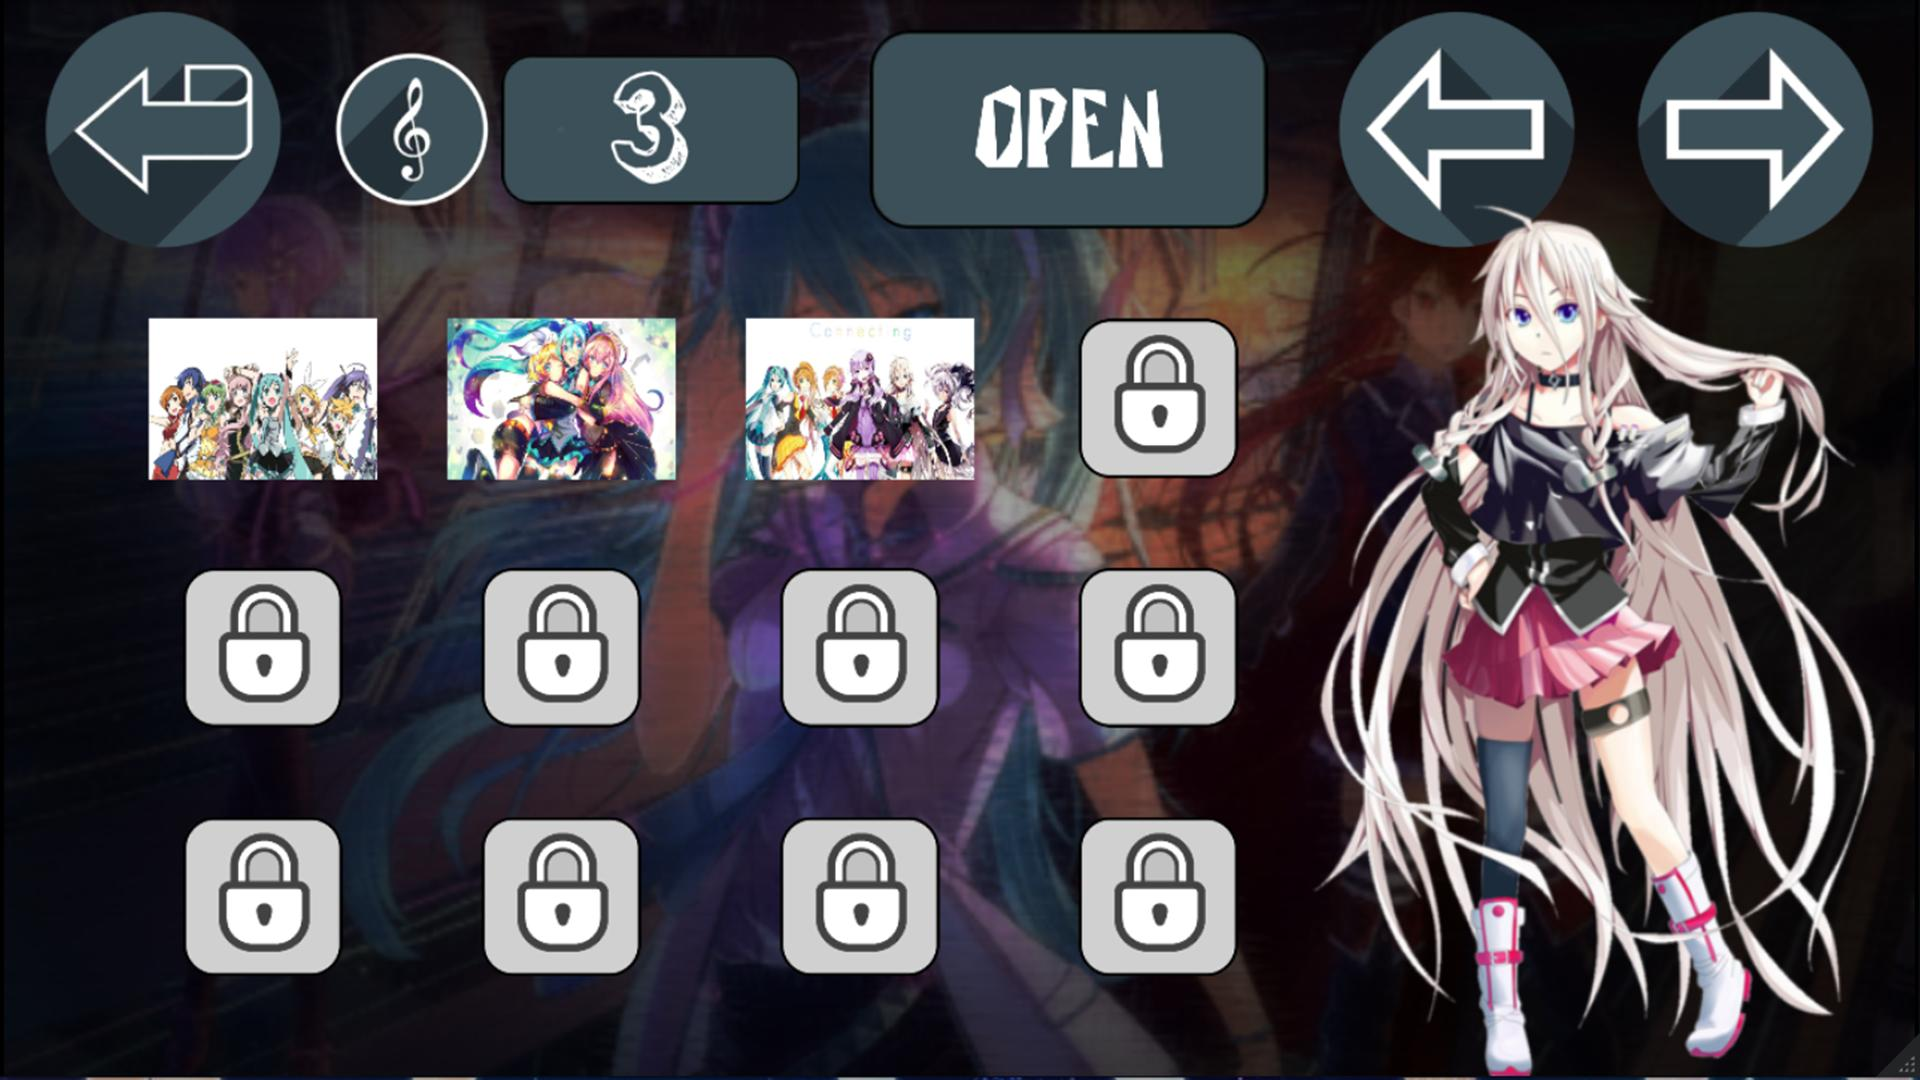 Chibi Vocaloid Memory for Android - APK Download